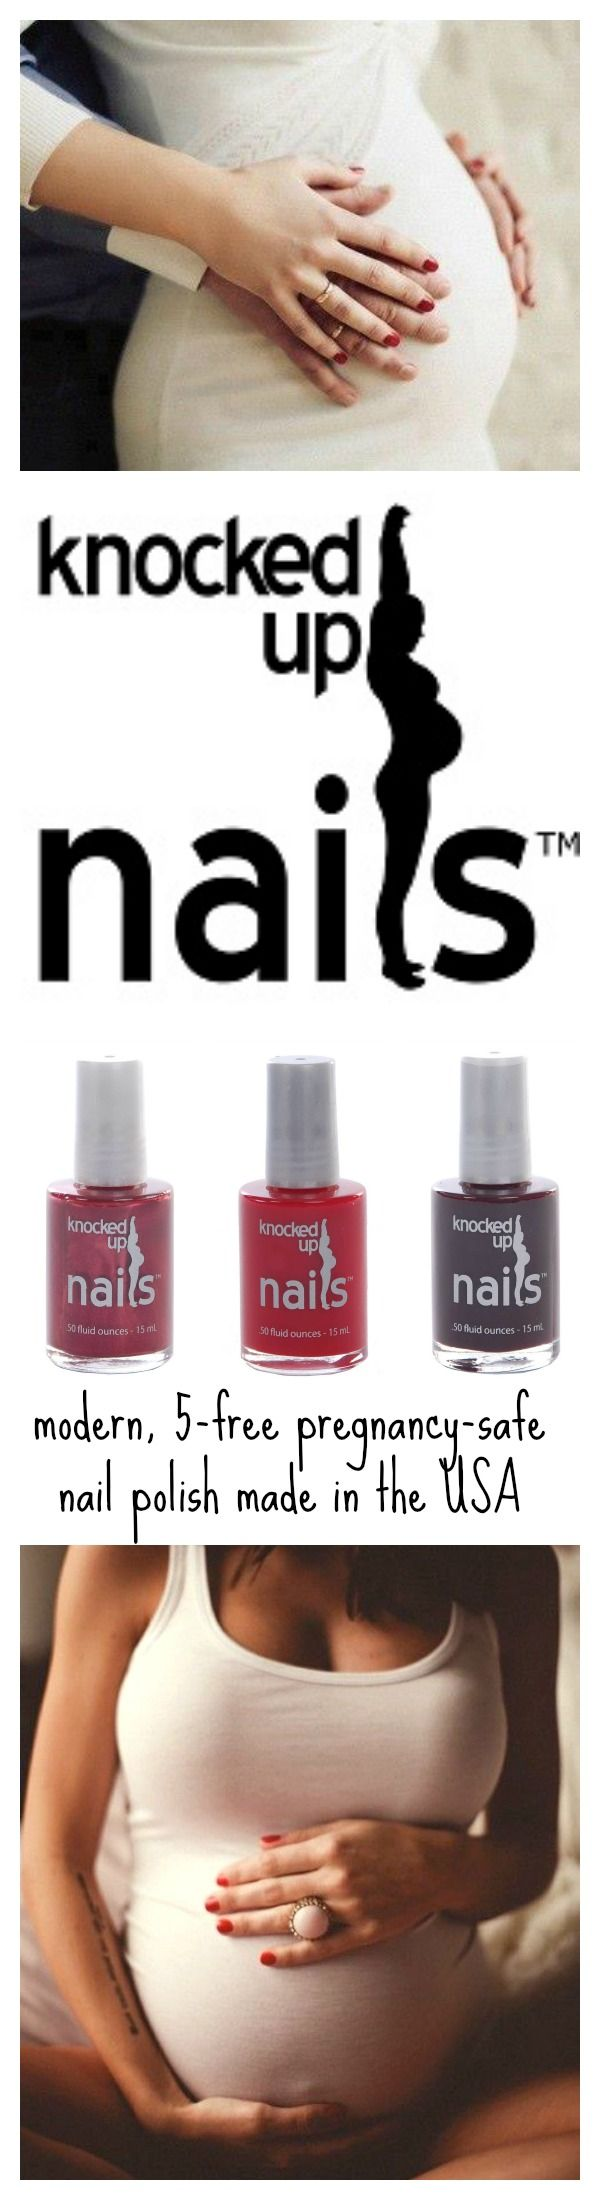 have you heard of Knocked Up Nails? 5-free nail polish safe for ...